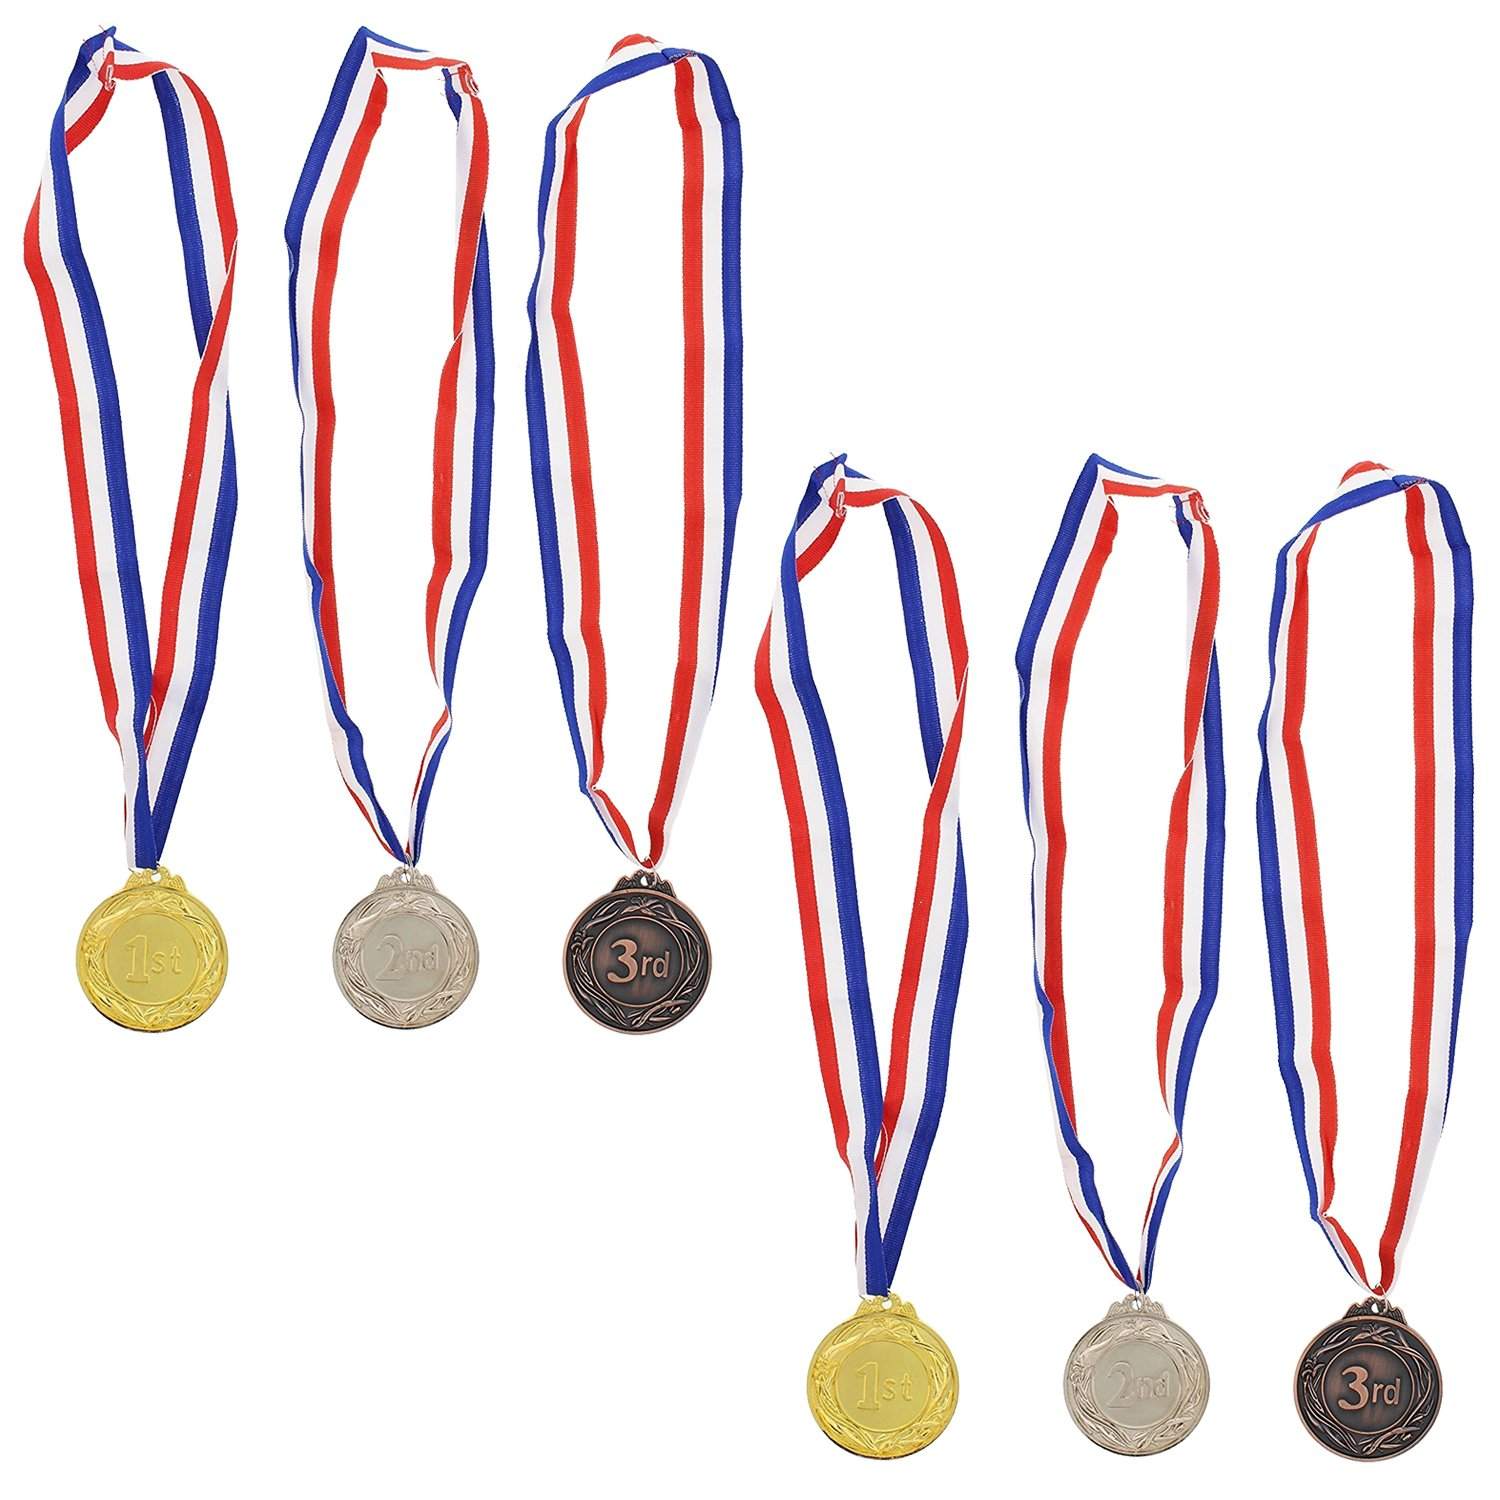 Juvale Gold Silver Bronze Award Medals - Olympic Style Awards for Contests, Games, Shows, Competitions - 6 Pc Set